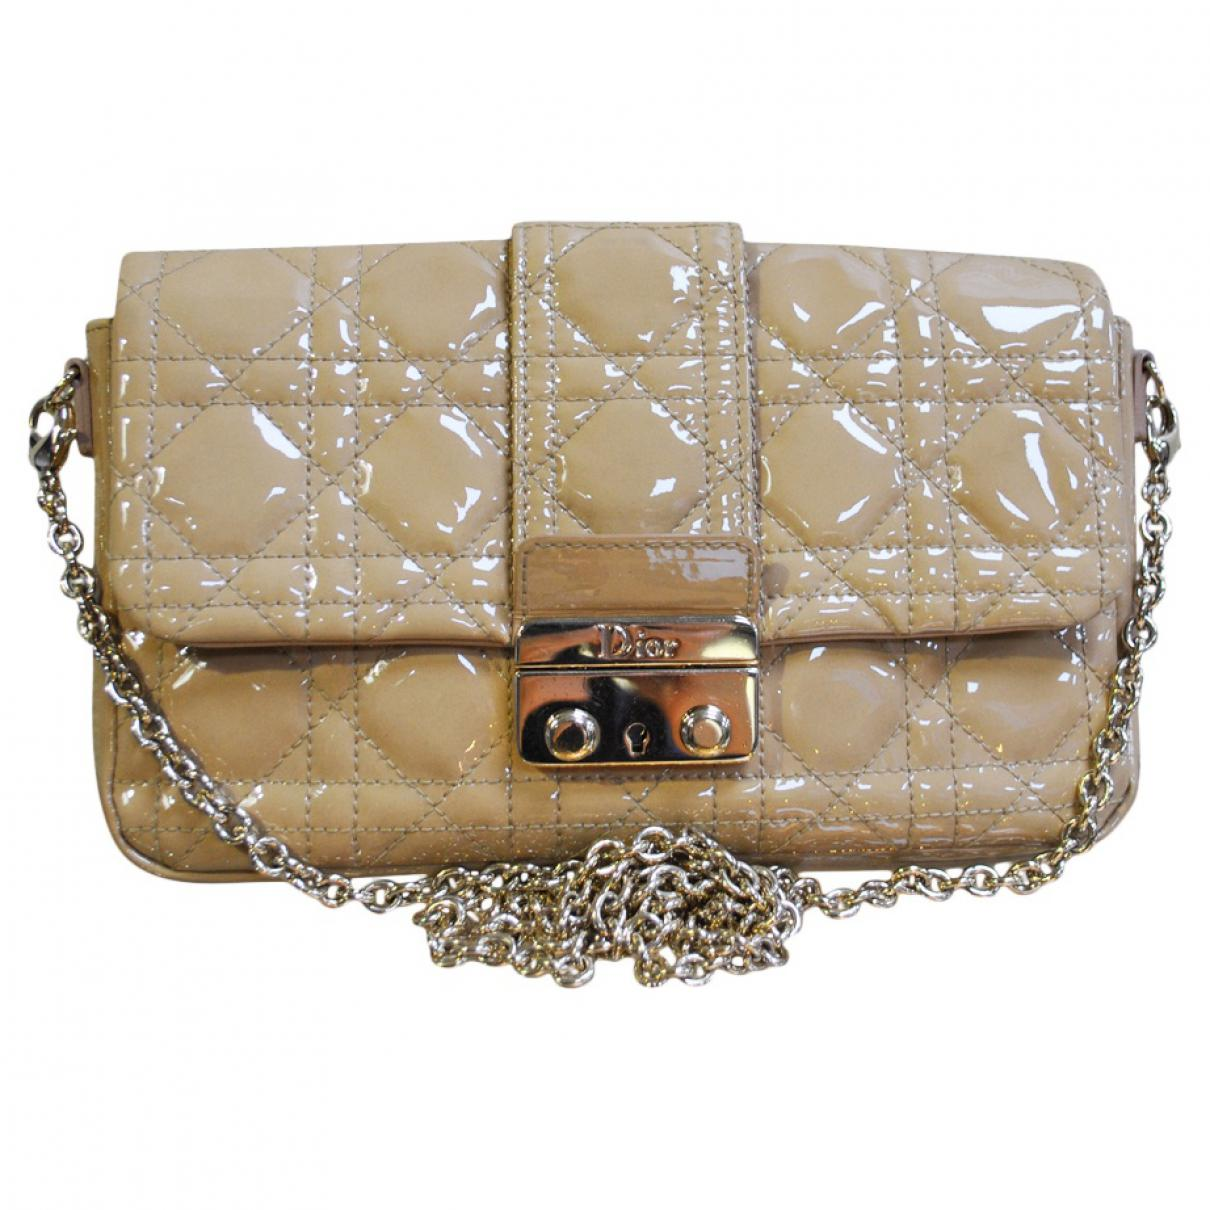 Dior Pre-owned - Patent leather clutch bag hPH2asSHN